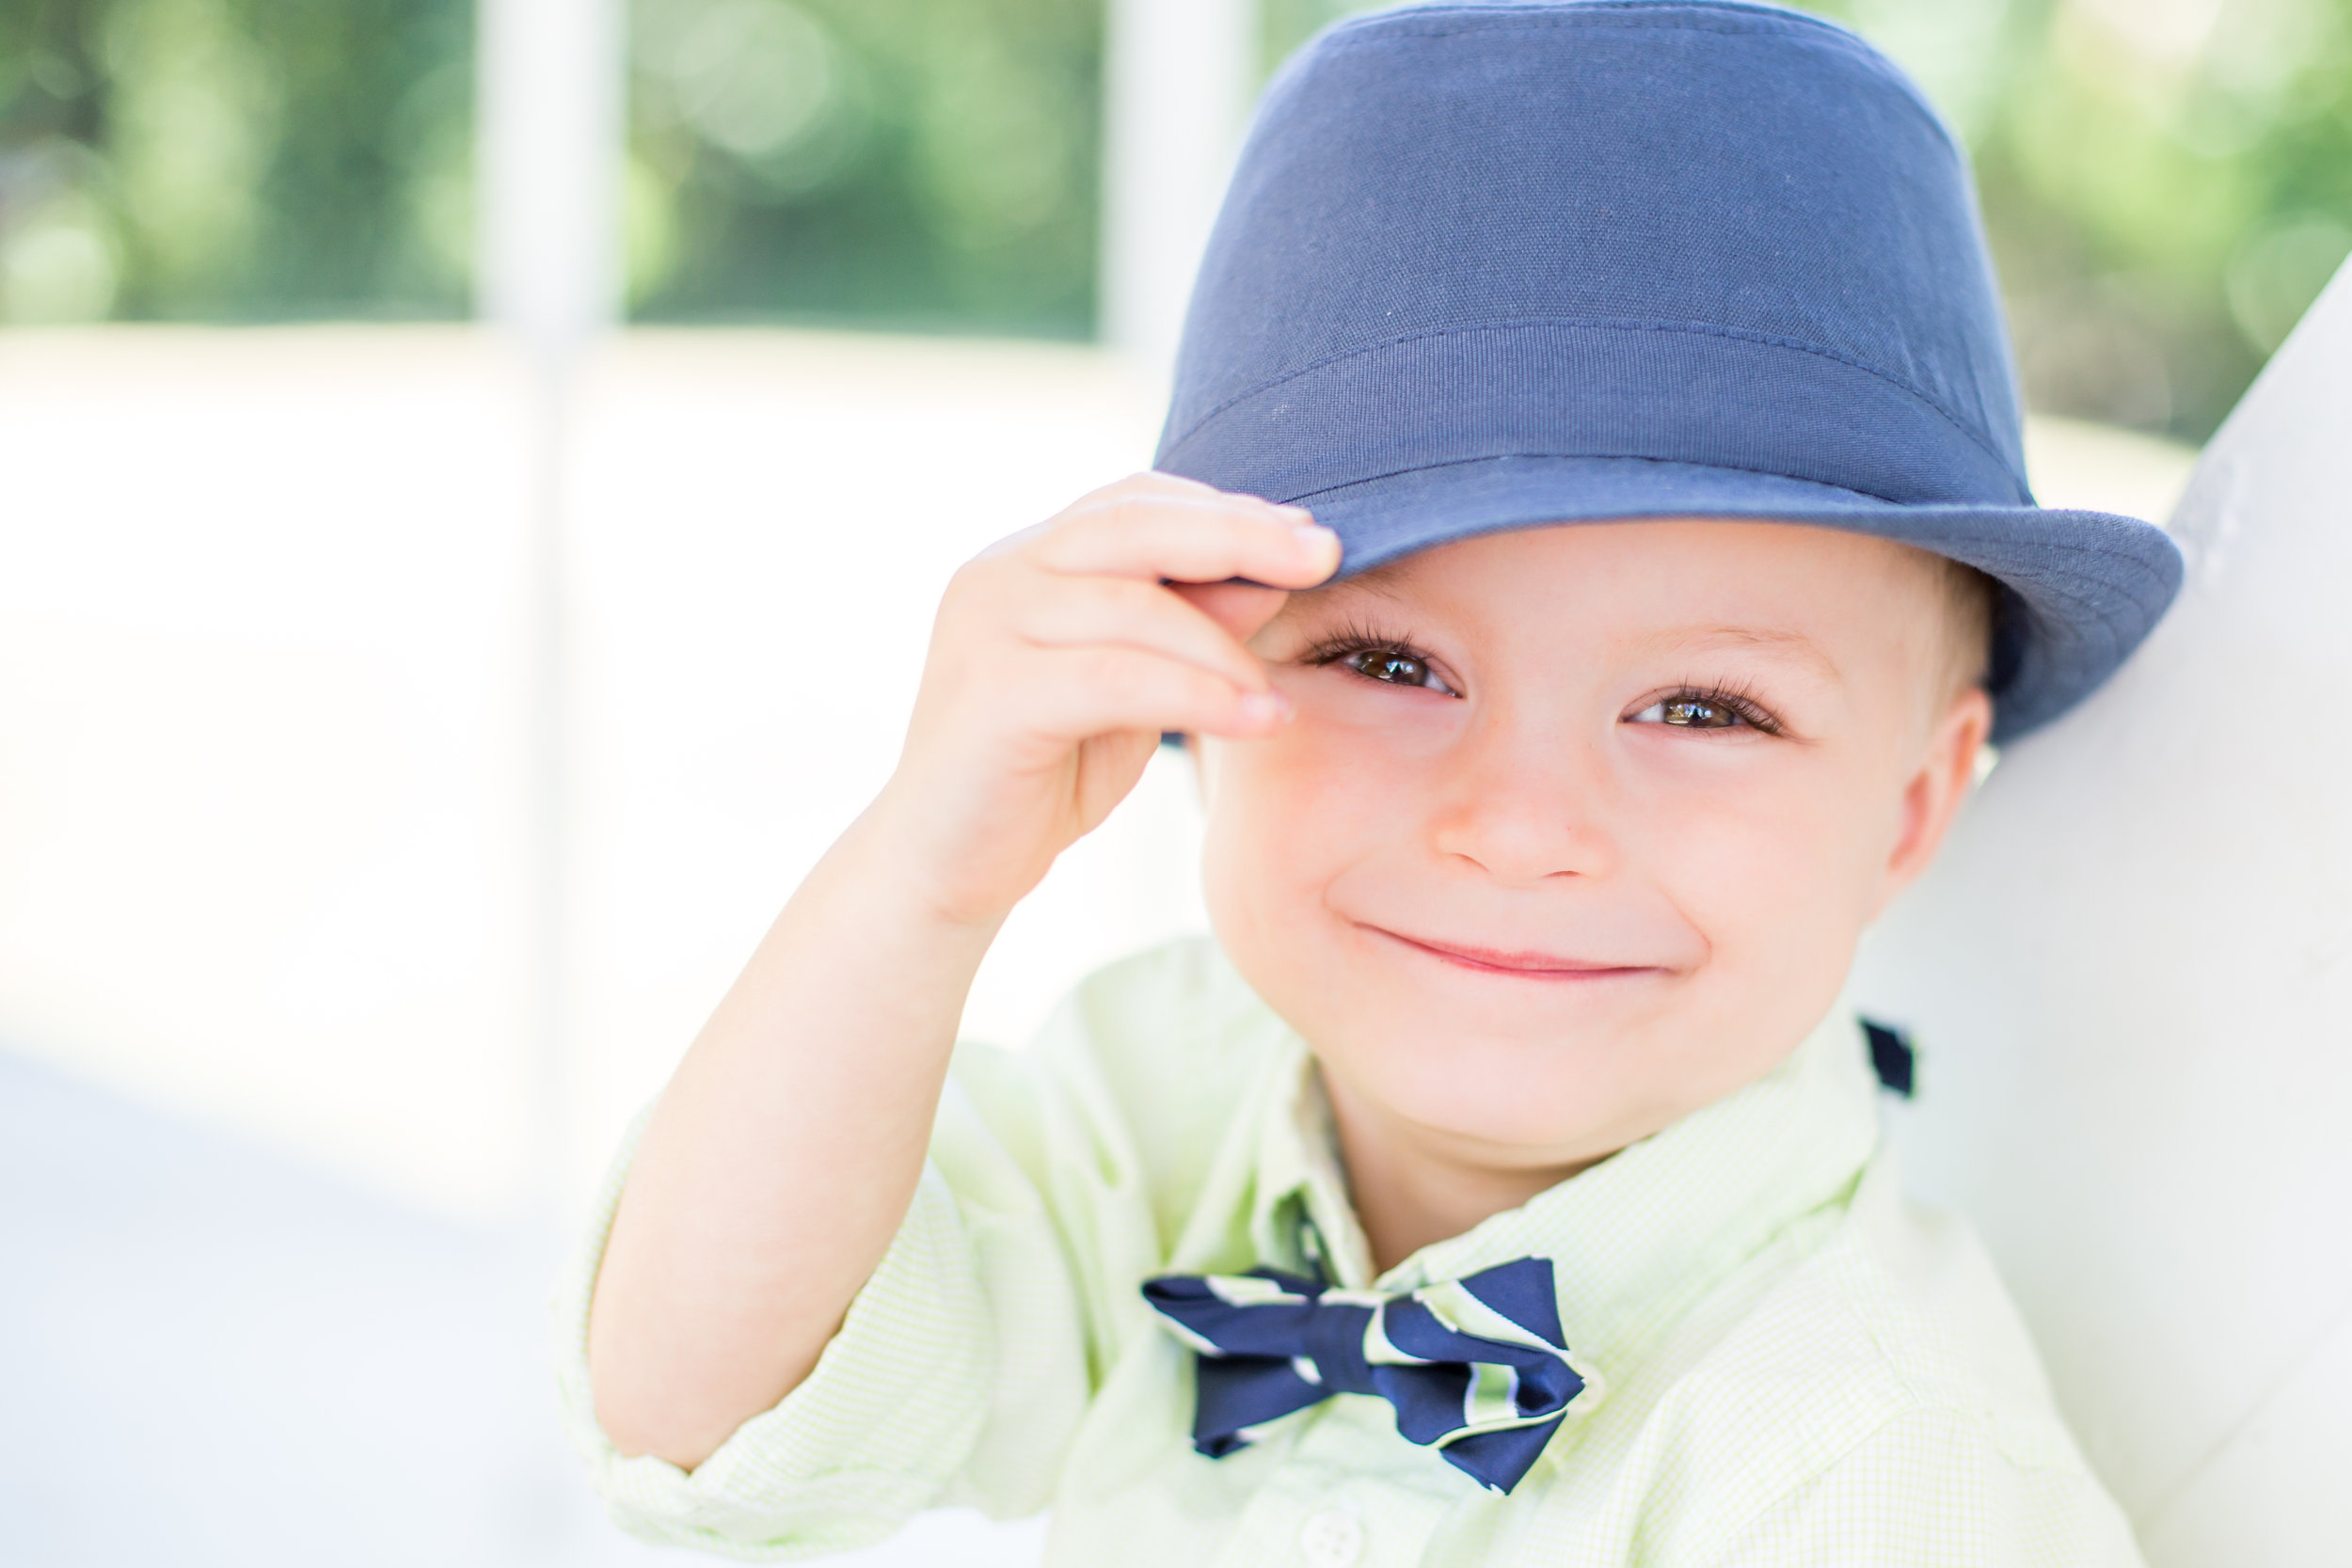 Boys in Bowties - June 10th - June 28thThursdays 6:00 to 6:45pmJuly 8th - July 26Thursdays 6:00 to 6:45pmThis class is for 3 to 4 year old boys and will explore jazz and hip hop. We will dance to a little bit of Justin Timberlake and Frank Sinatra type songs! These boys are sure to make you get off your seat and dance when you see their moves! Attire: Comfortable clothing with tennis shoes or jazz shoes.Price $41